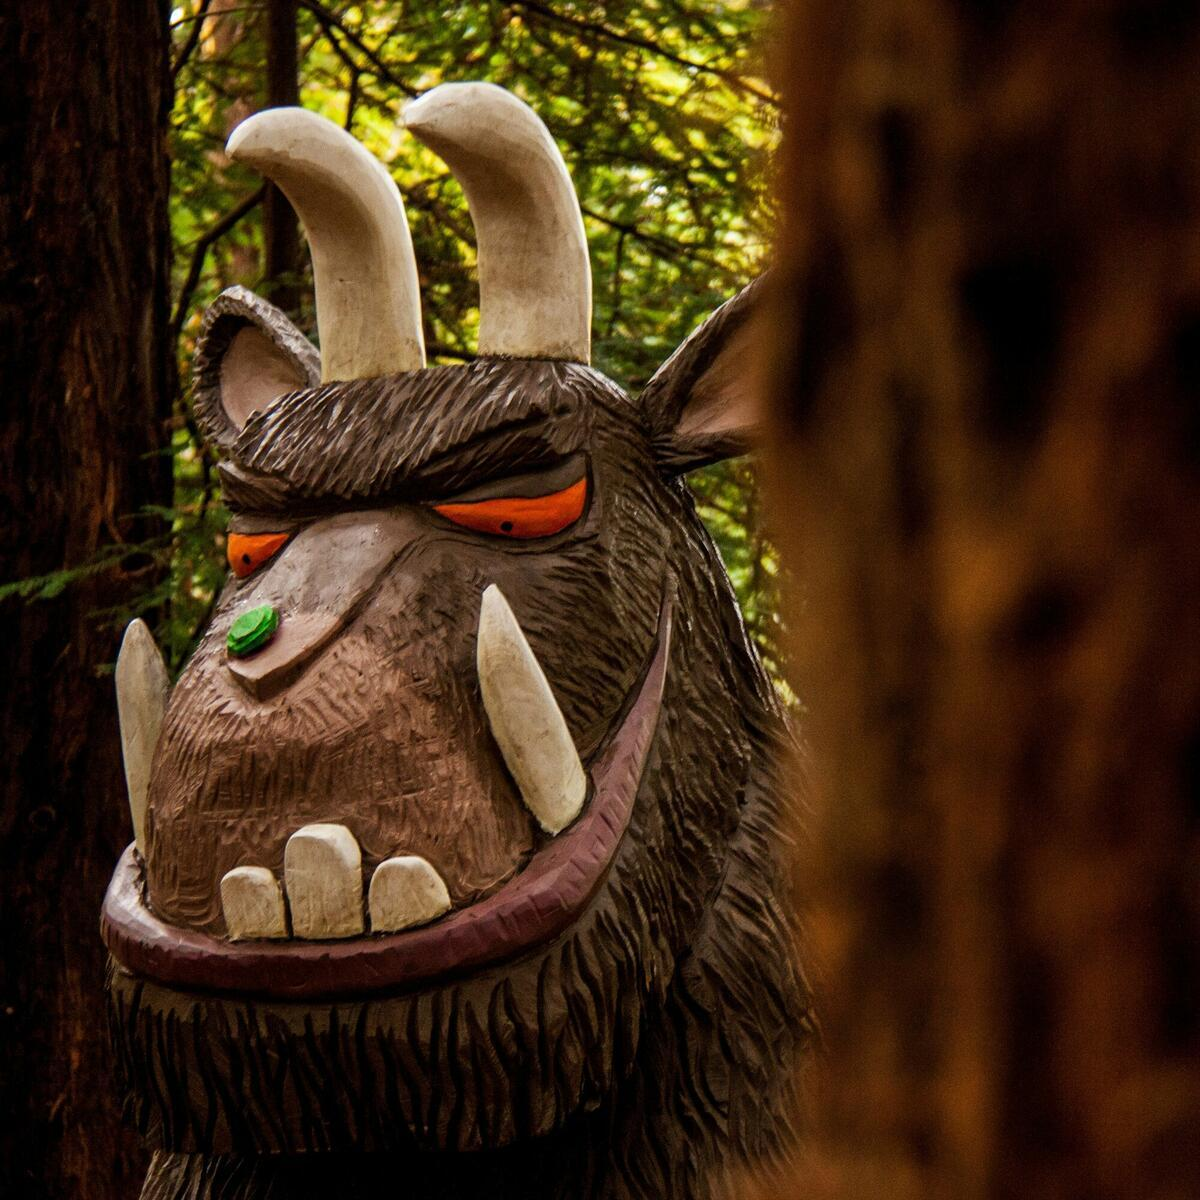 The Gruffalo, Queenswood (c) Natalie Jolley